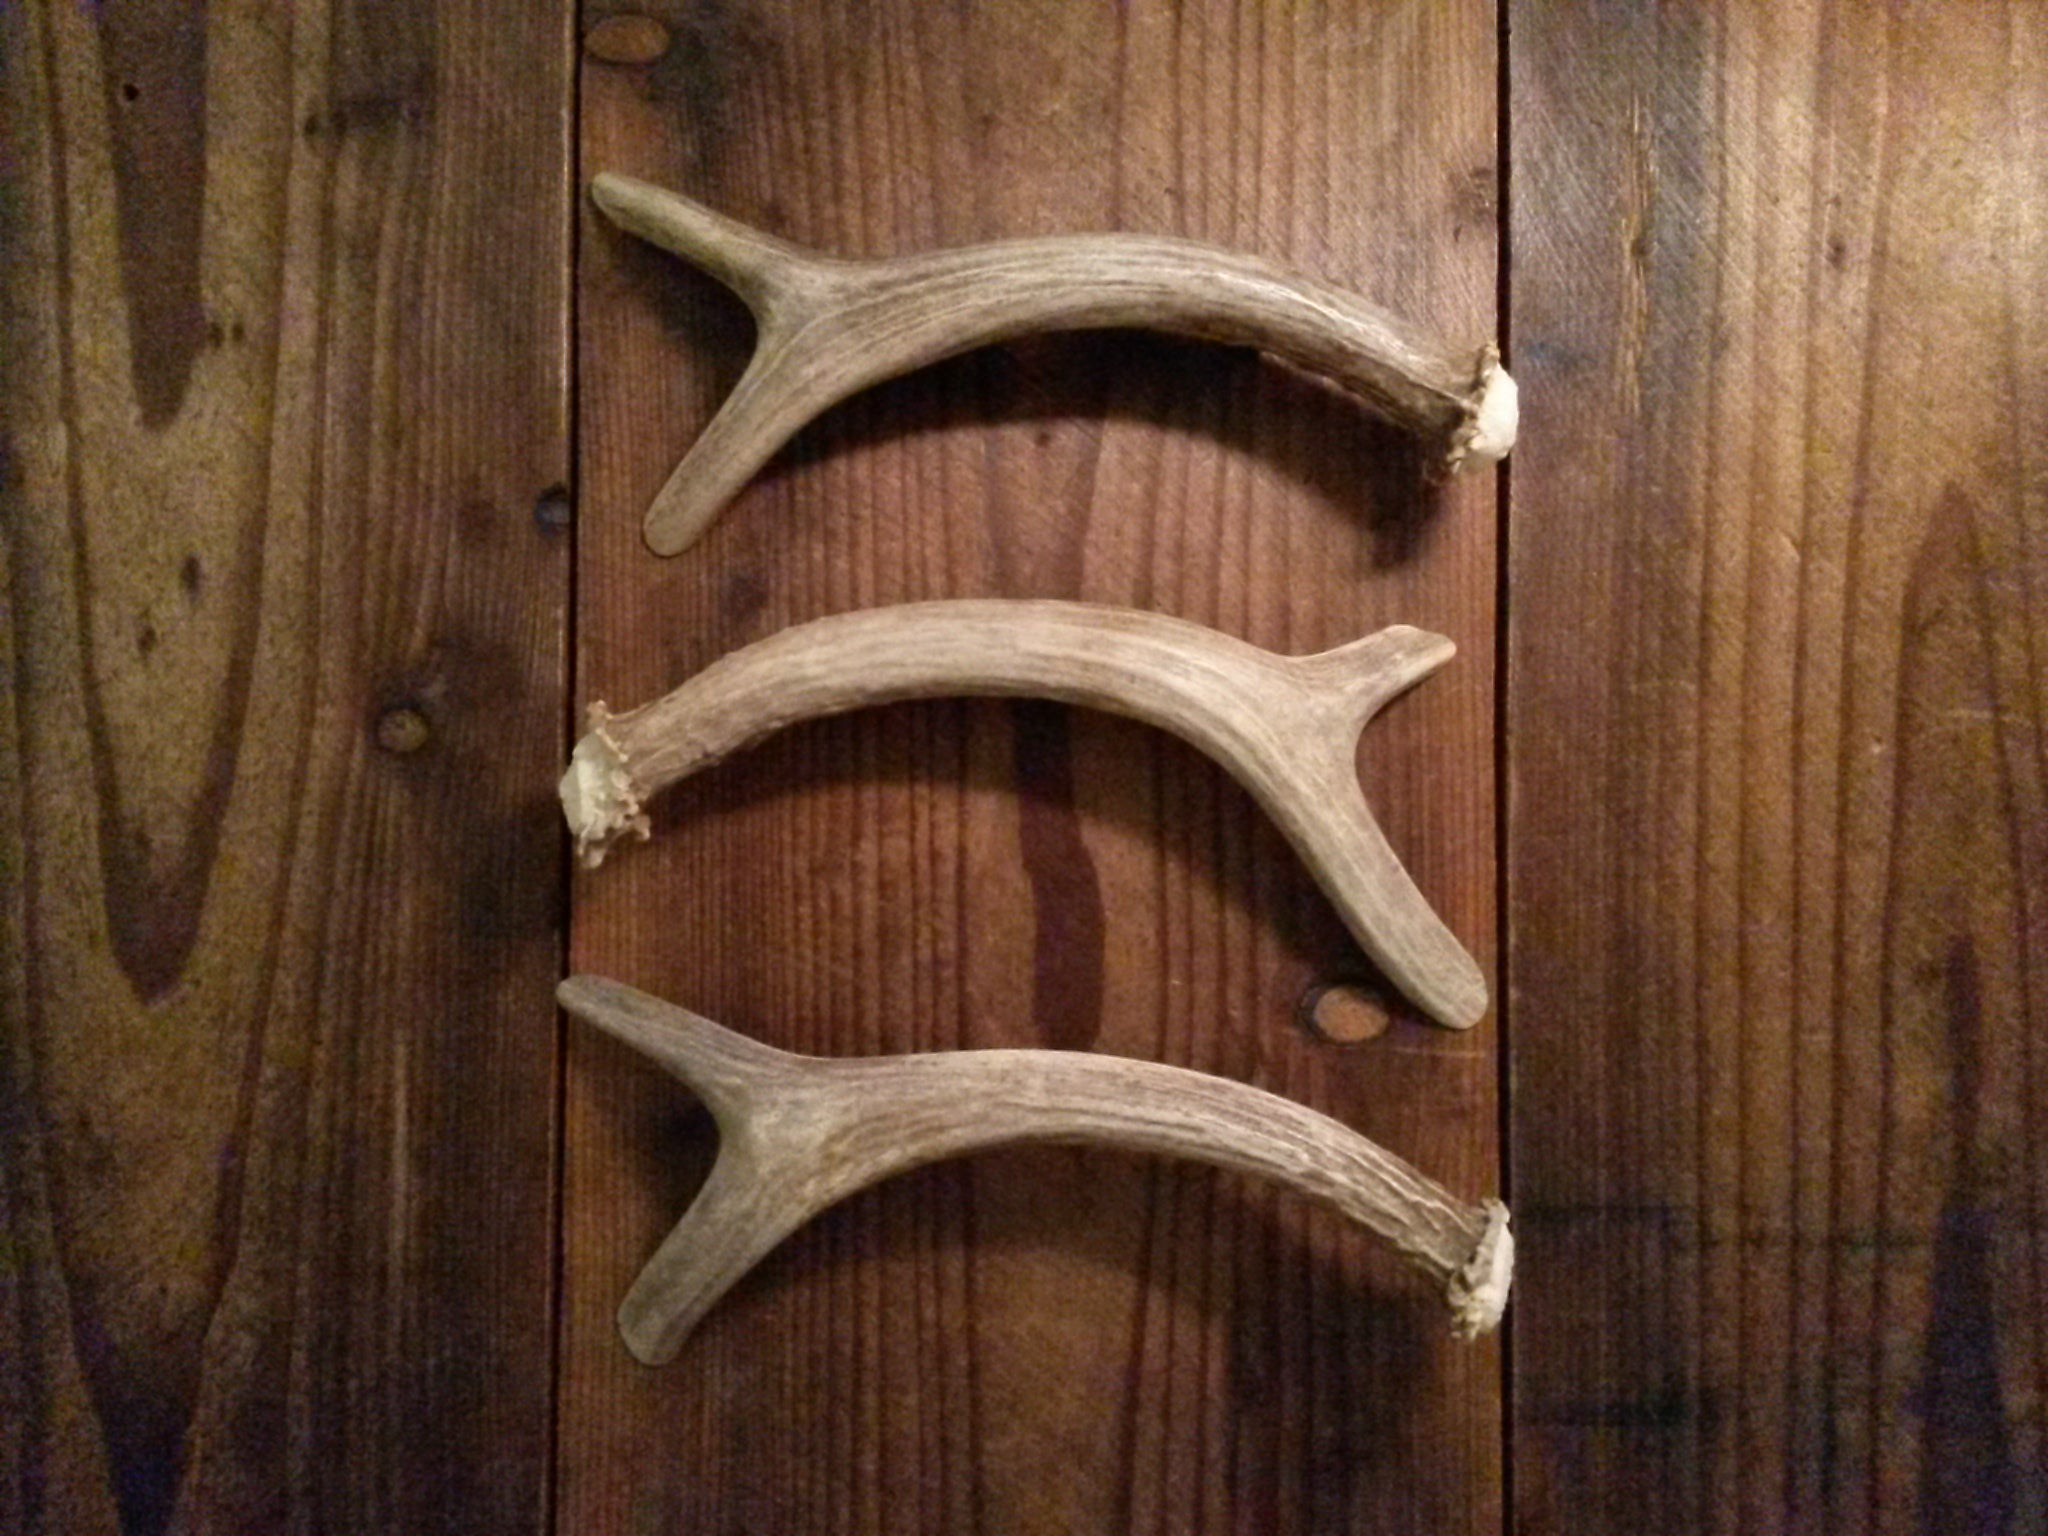 Forked Antler Handle variations staggered by Antler Artisans